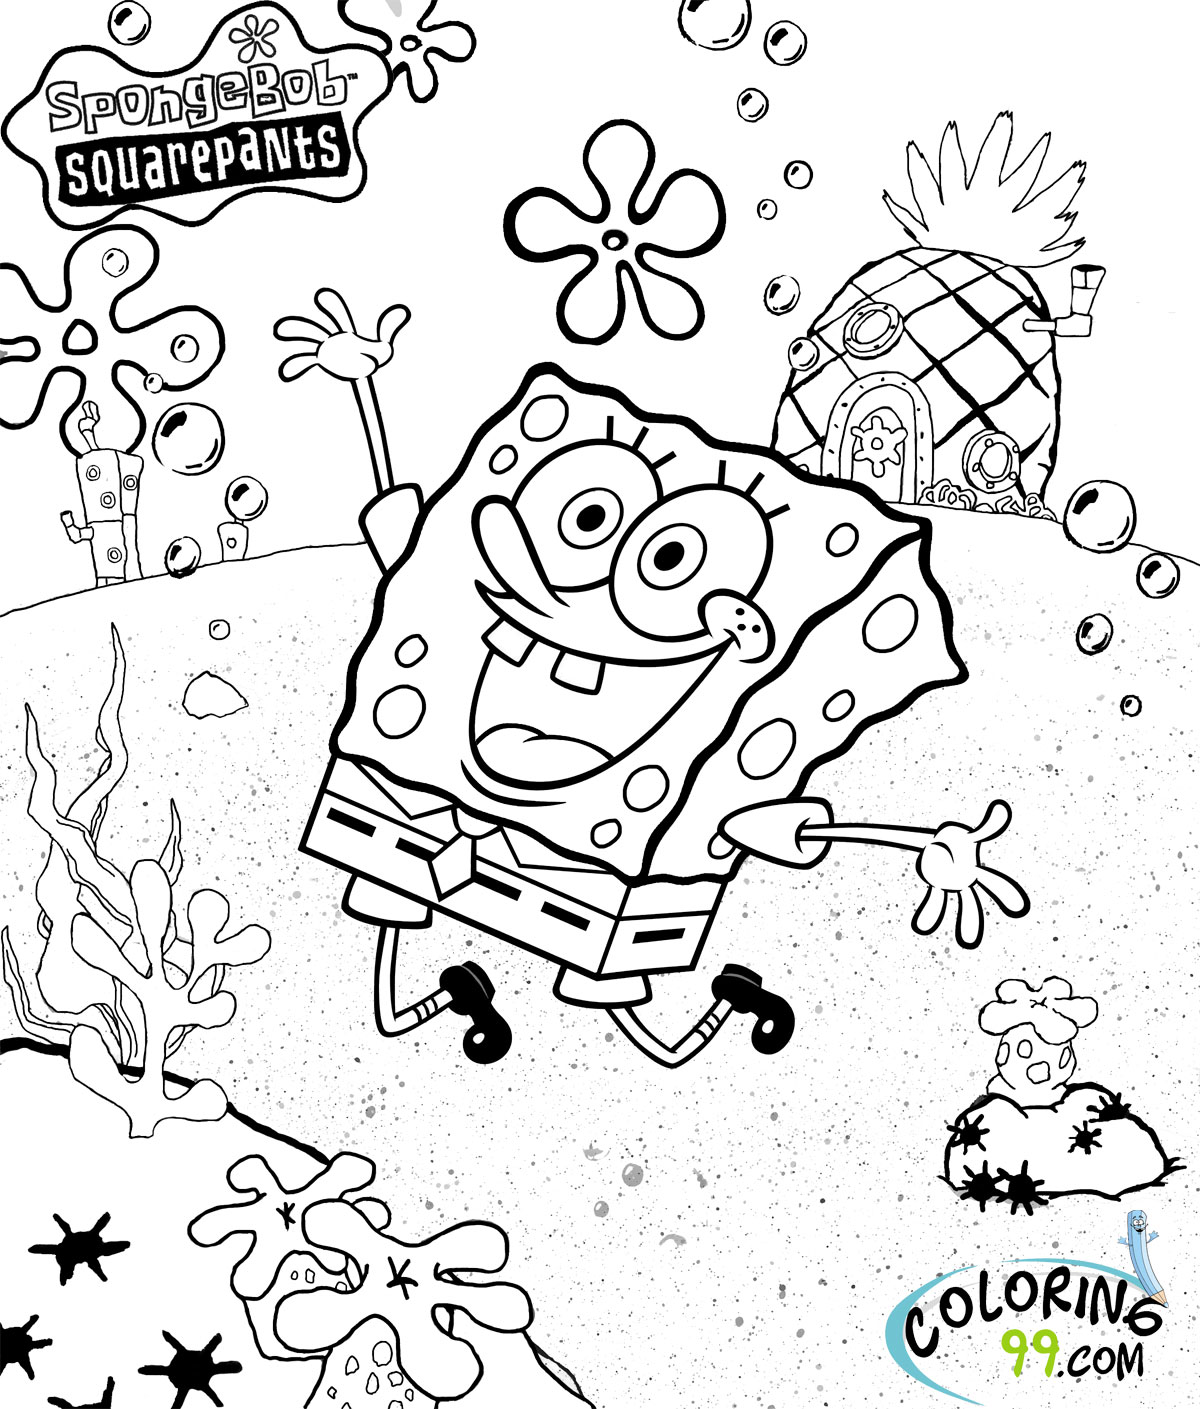 spongebob and gary coloring page Only Coloring Pages